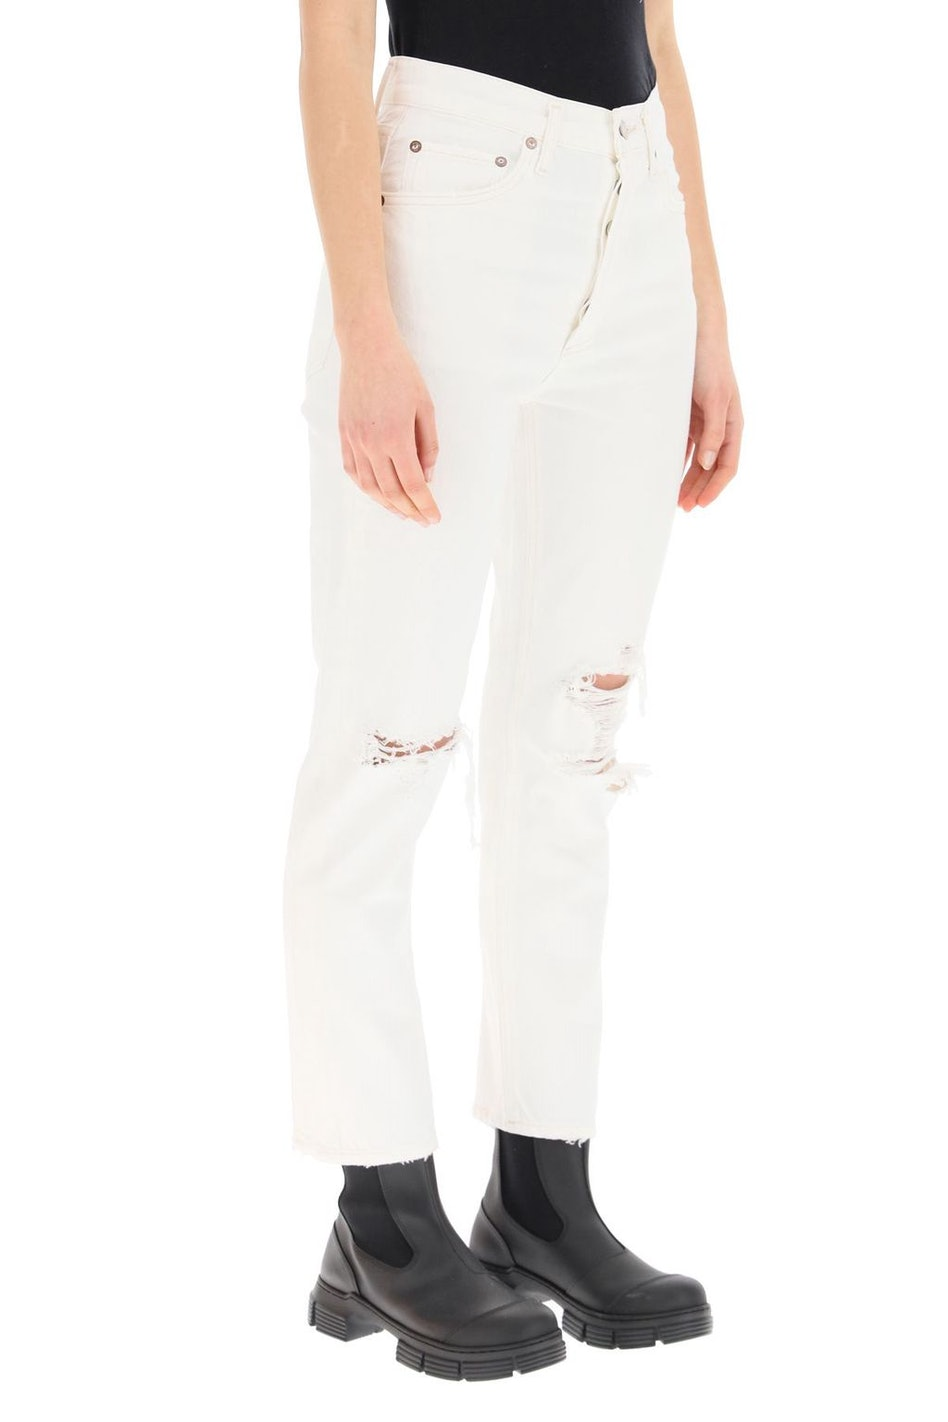 Agolde Riley High Rise Straight Crop Jeans: additional image